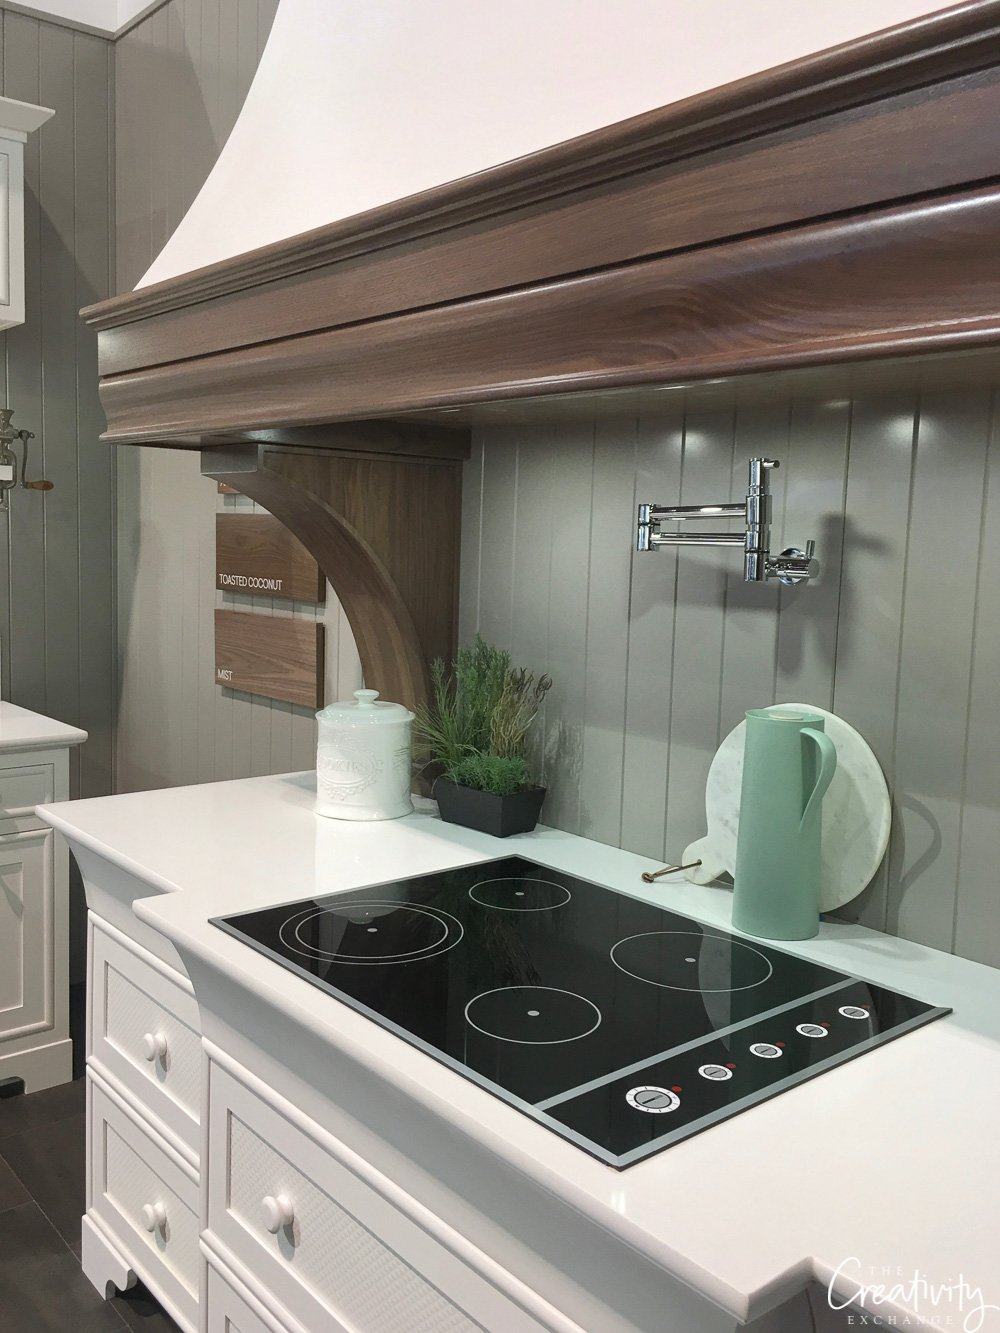 Custom cabinetry and wood vent hood